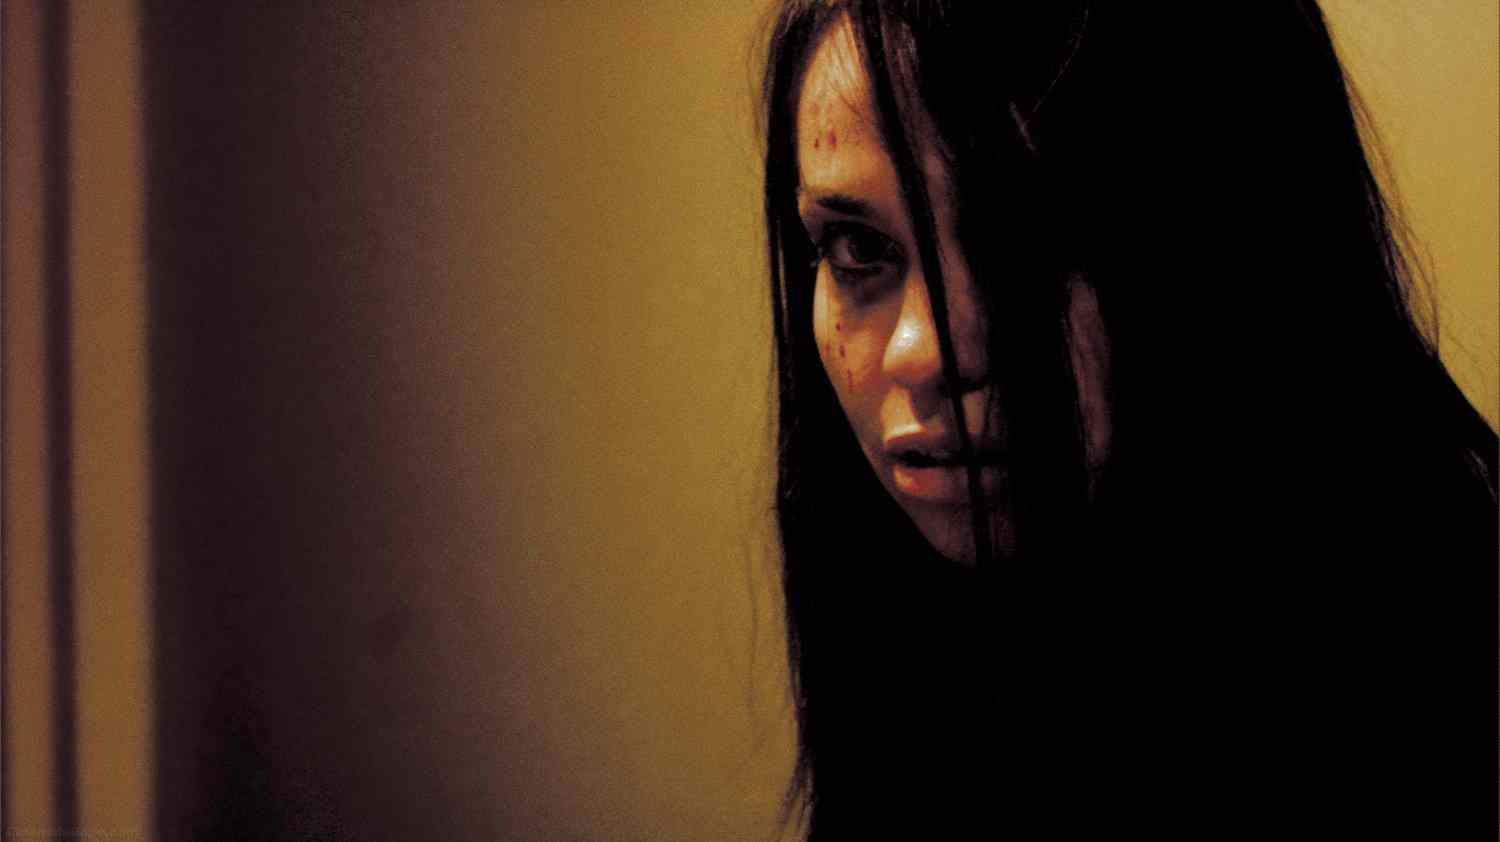 A shot of 'The Woman' (Beatrice Dalle) from the 2007 Alexandre Bustillo and Julien Maury horror film.